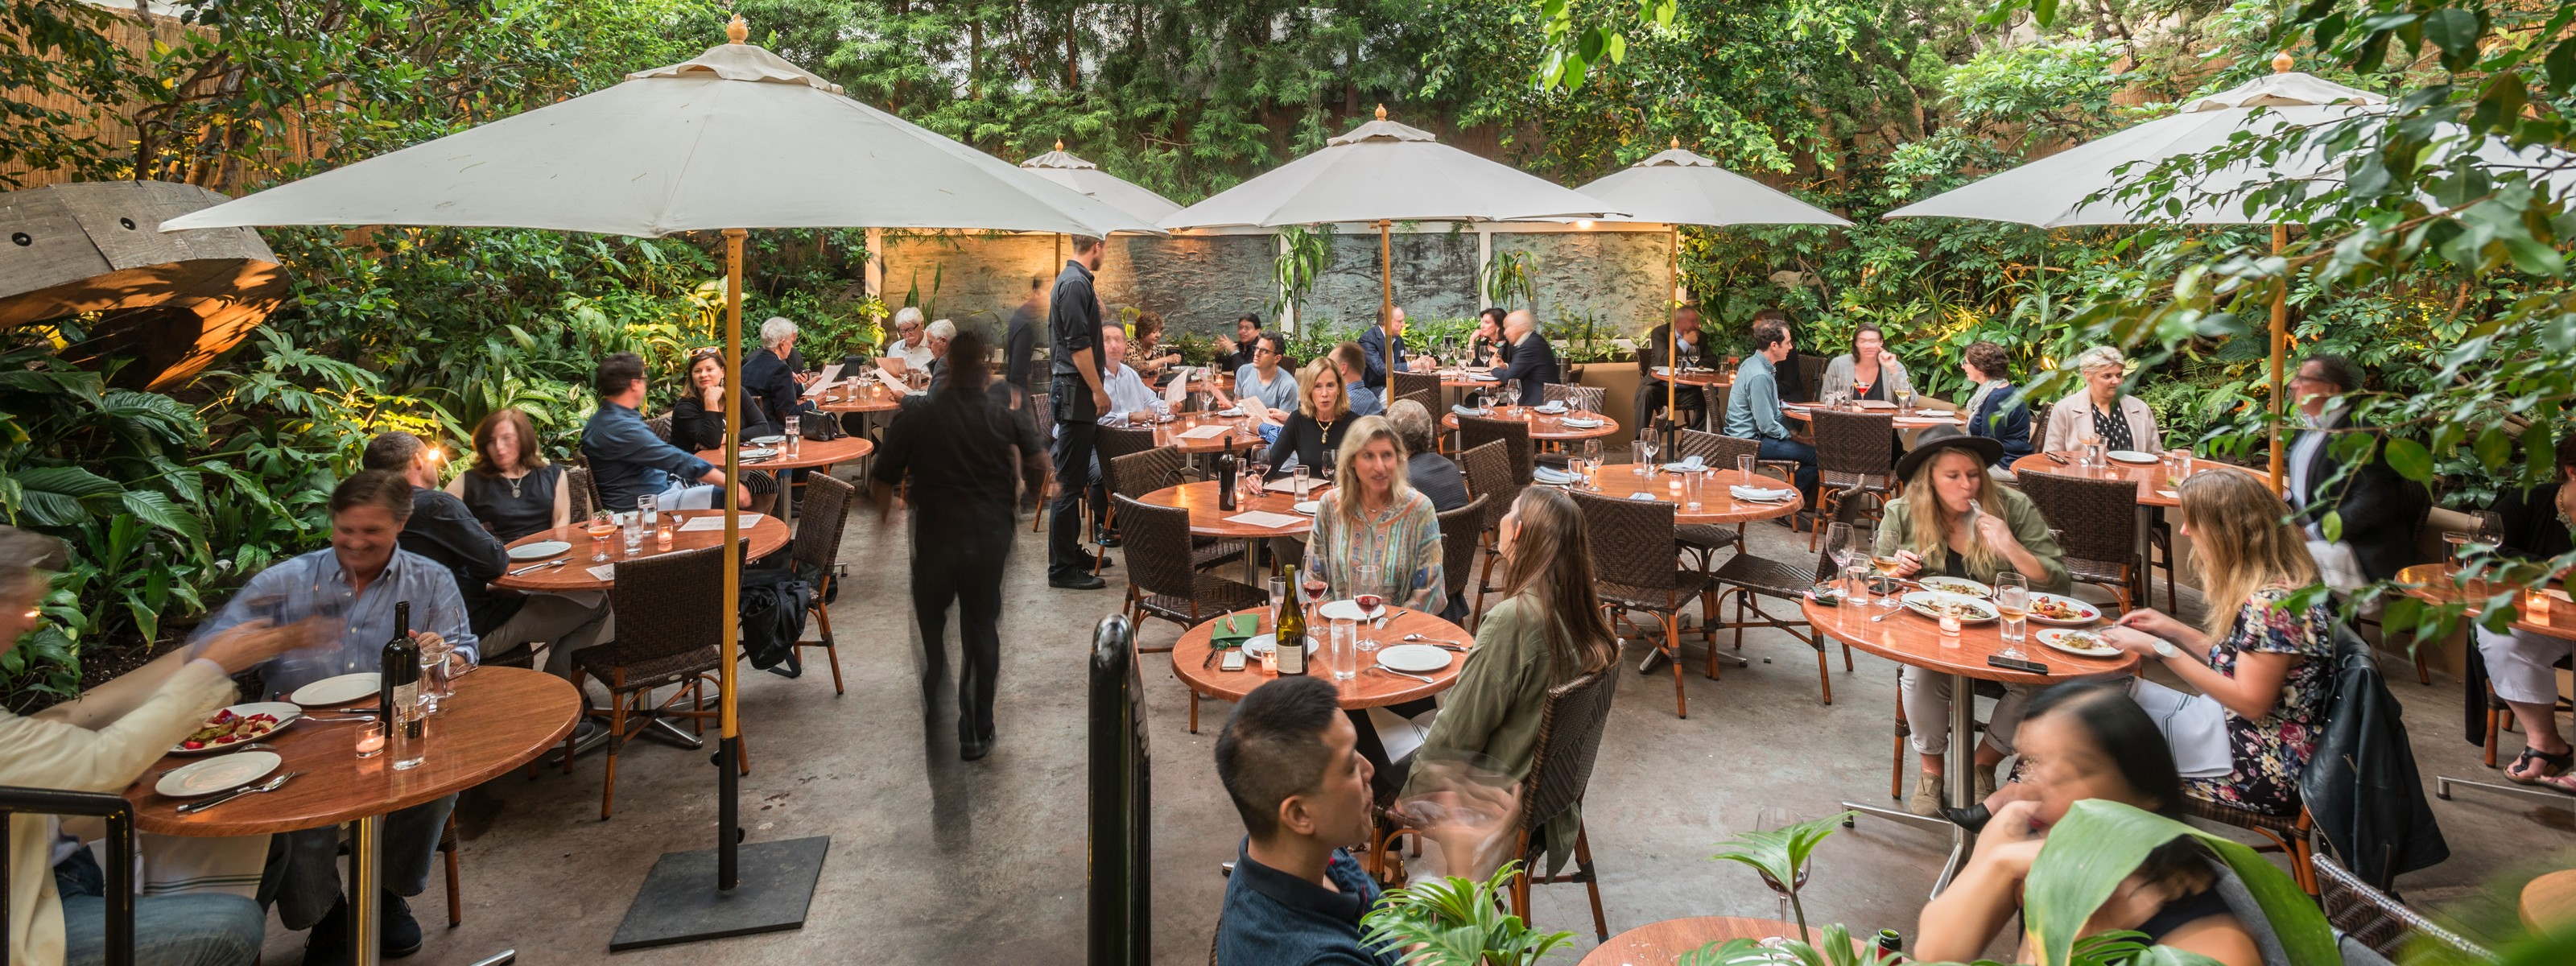 The Patio Power Rankings: Where To Eat & Drink Outside